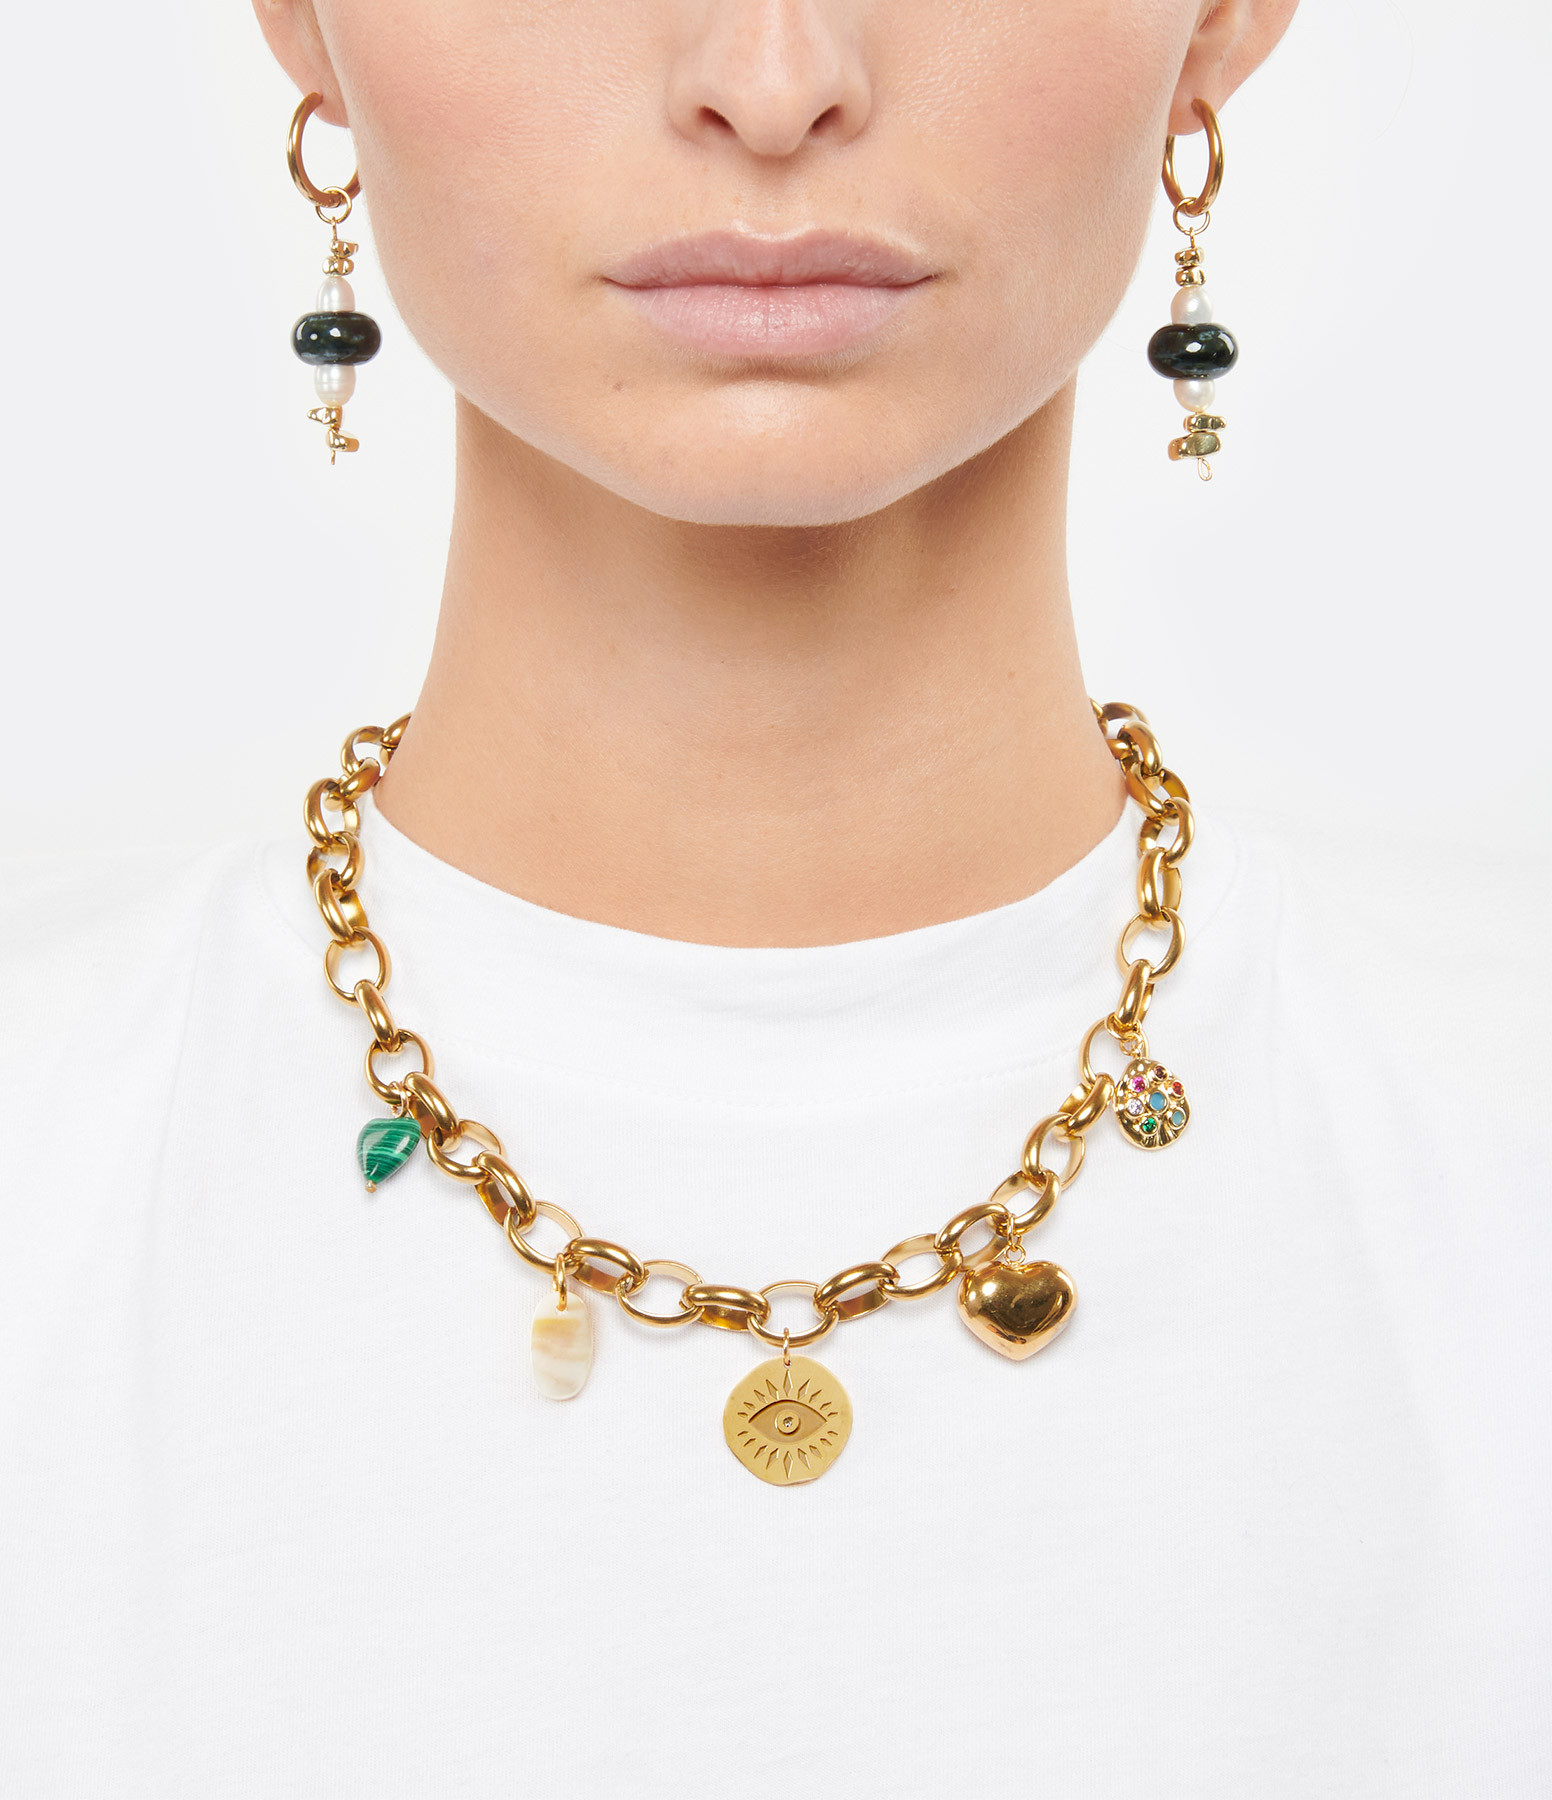 SHAKER JEWELS - Collier Chaine Charms Multicolore Plaqué Or